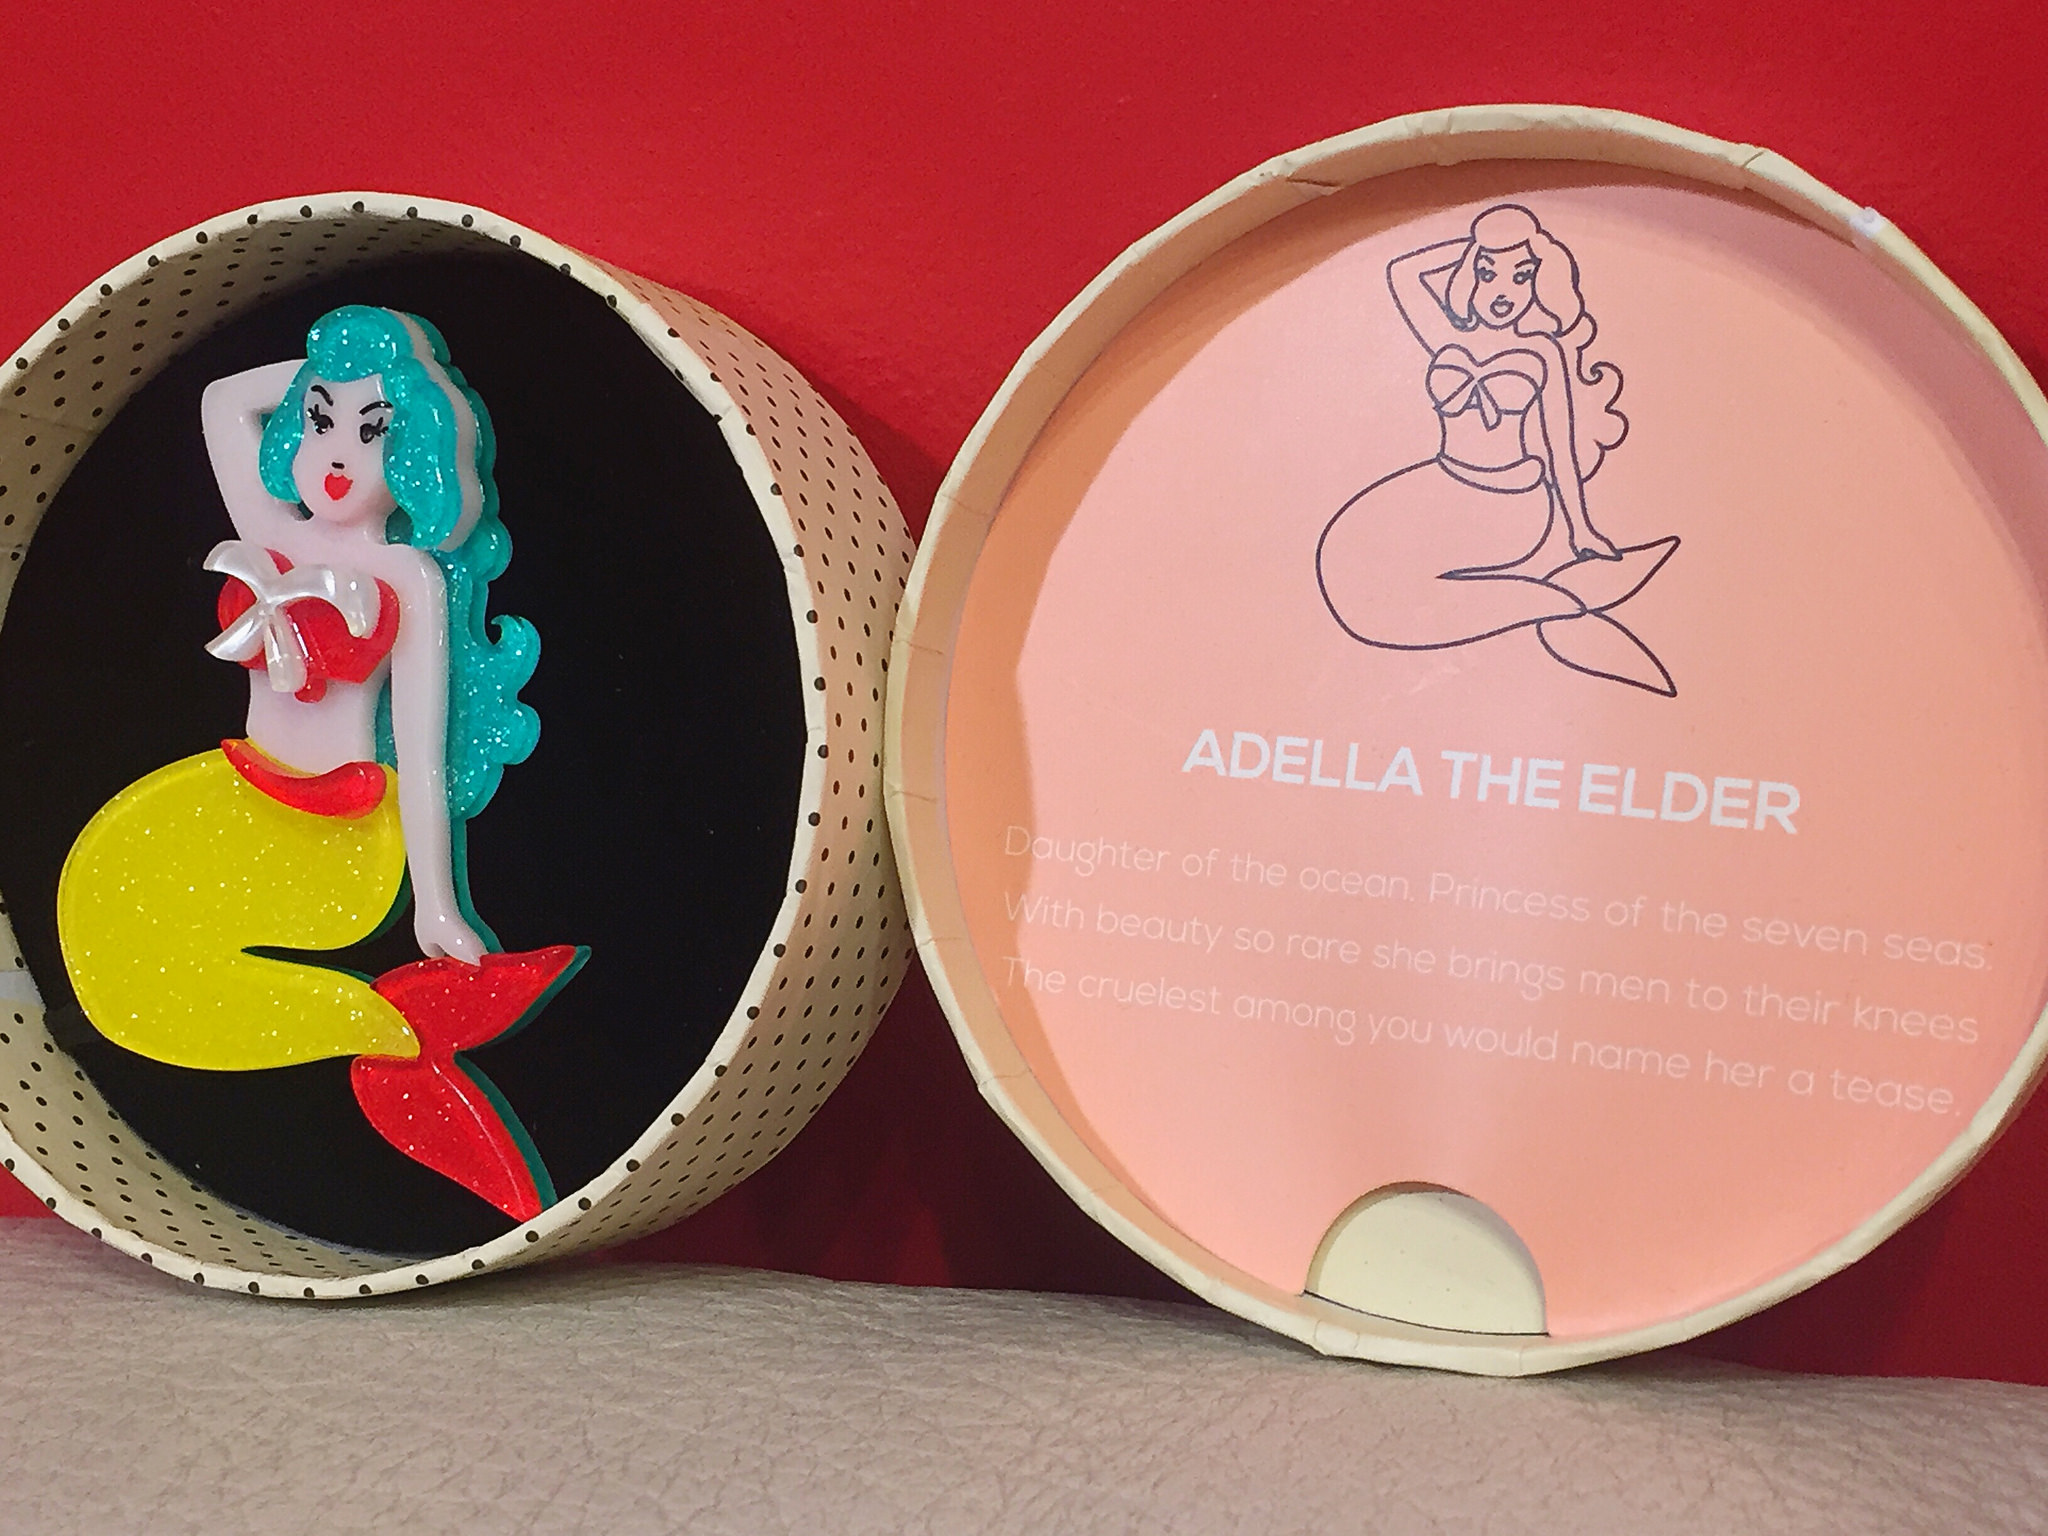 """All Erstwilder pieces come with a backstory. This one reads: """"Adella The Elder: Daughter of the ocean. Princess of the seven seas. With beauty so rare she brings men to their knees. The cruelest among you would name her a tease."""" Adella the Elder pin, $38"""